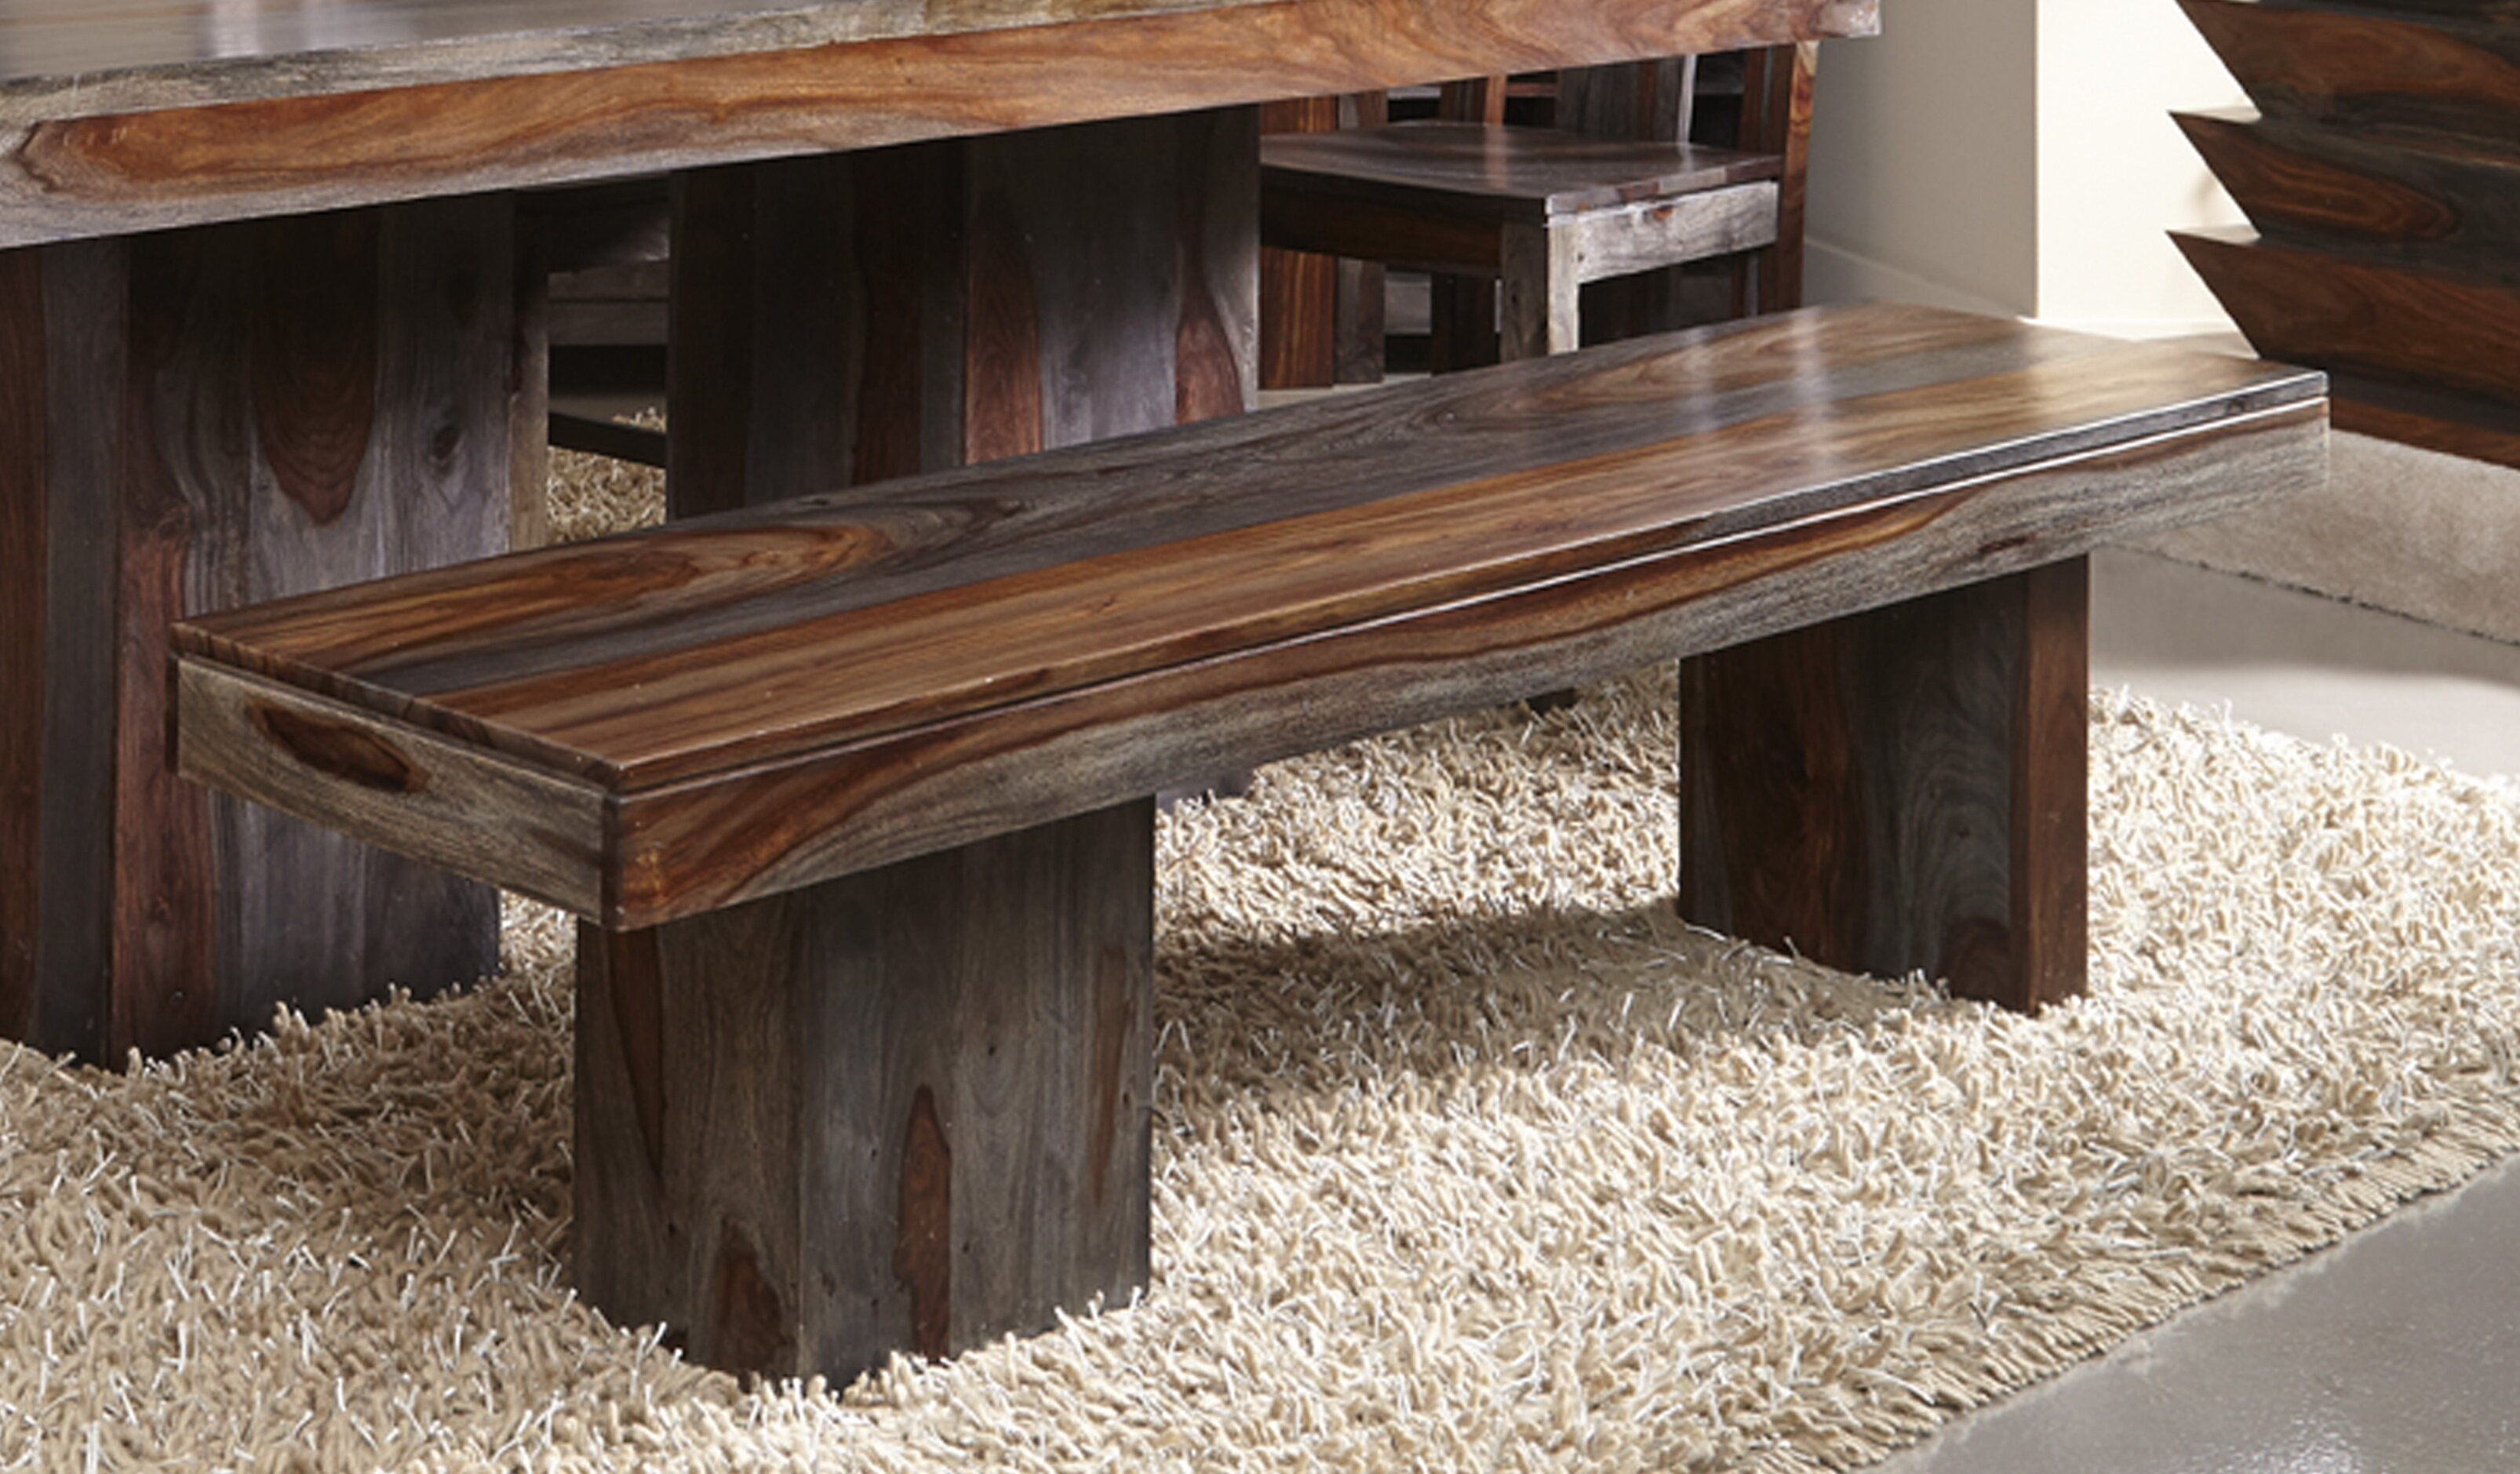 Loon Peak Cothern Wooden Bench